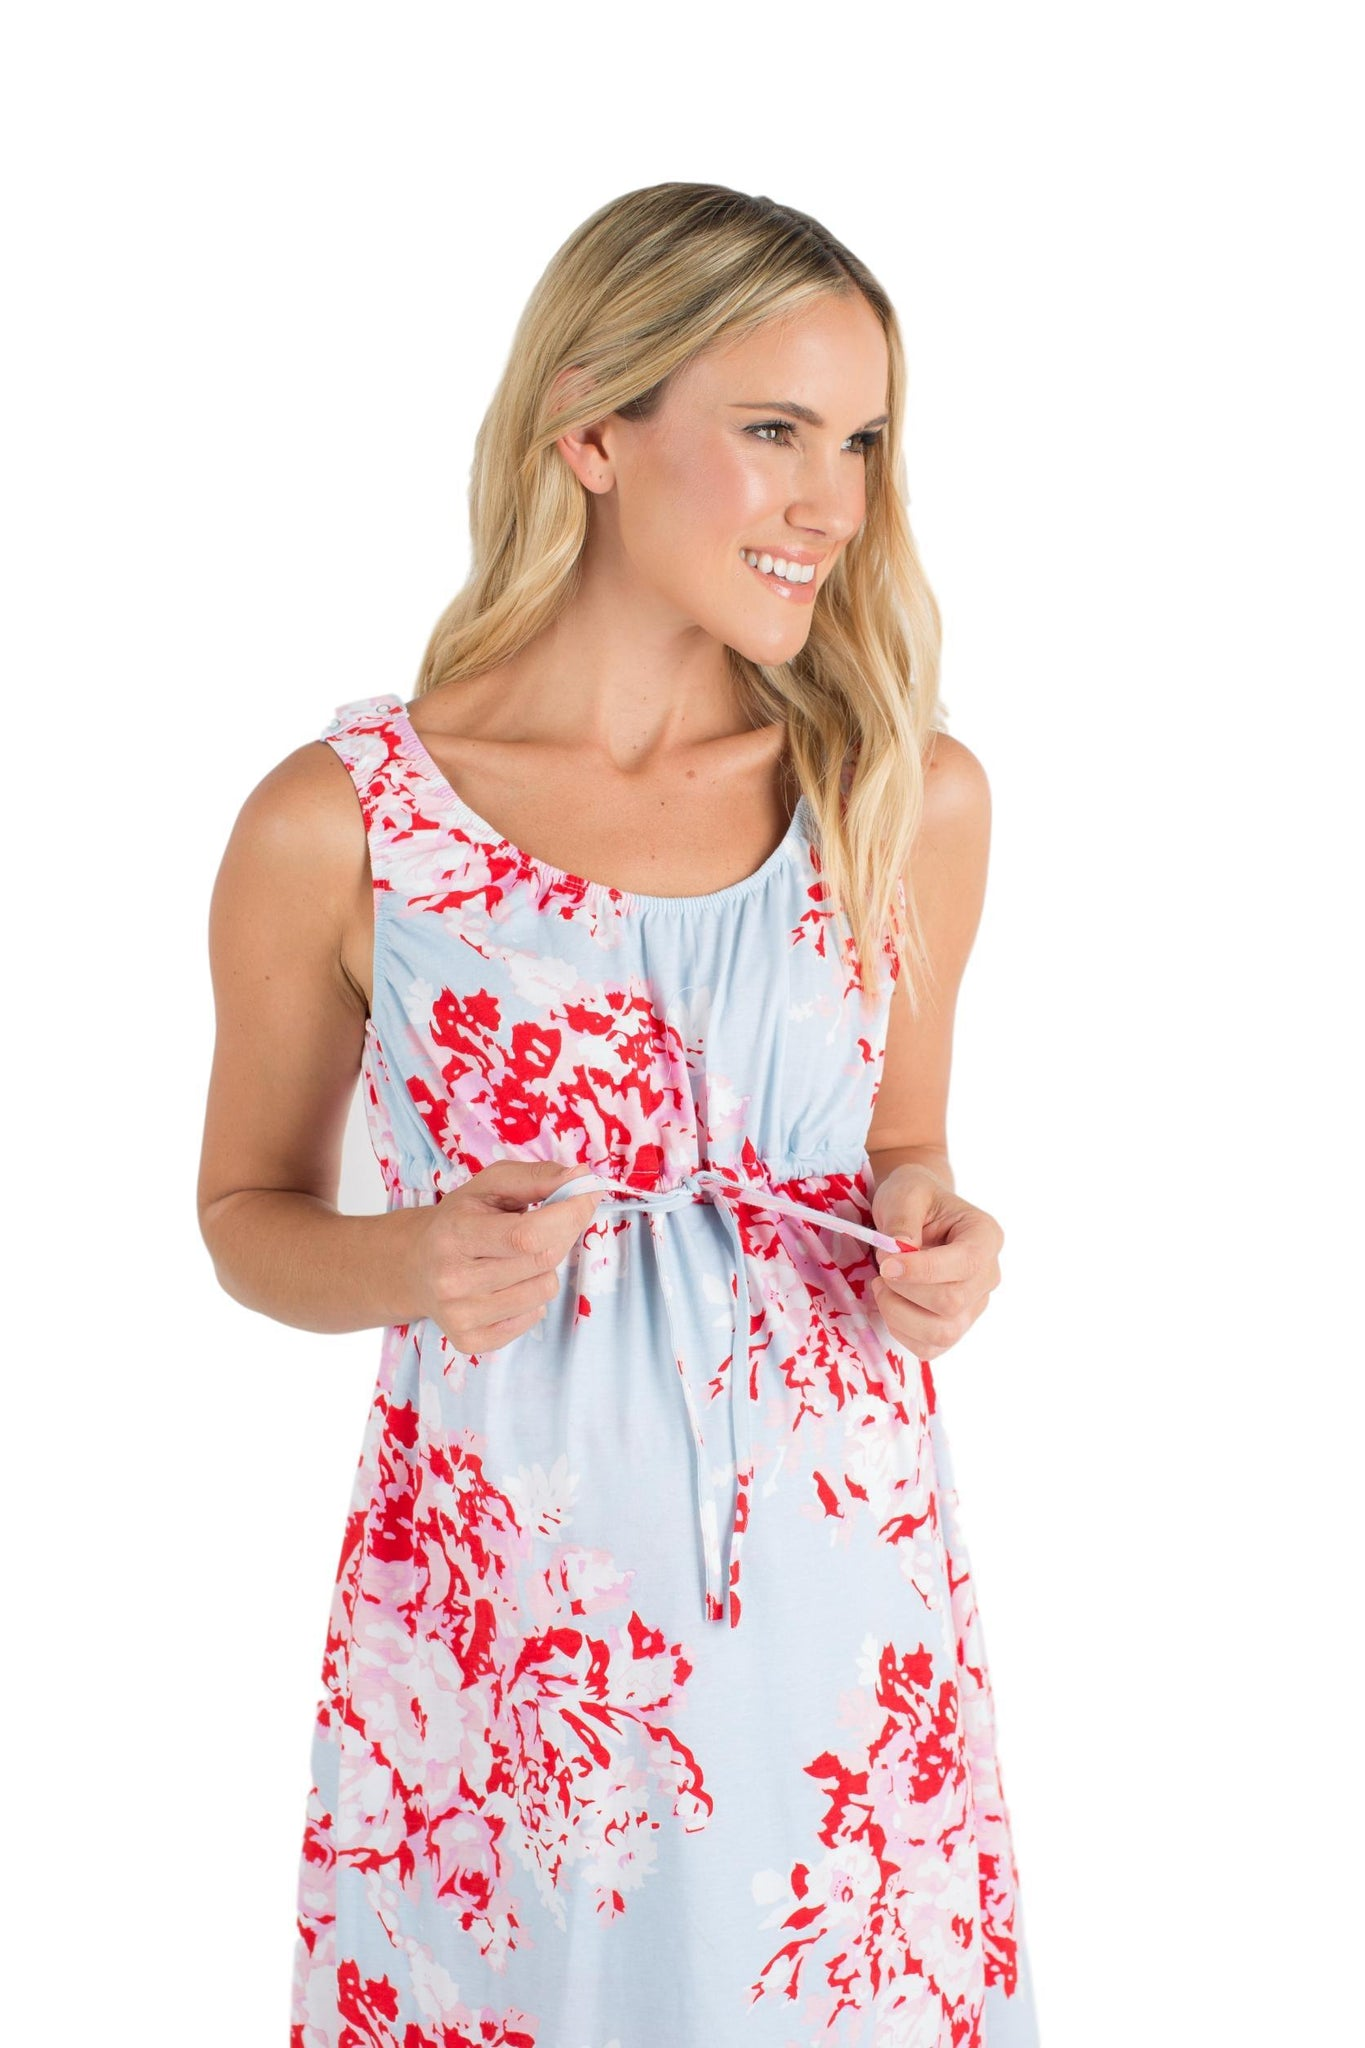 c31bdbc9e5 ... Mae Floral 3 in 1 Maternity Labor Delivery Nursing Hospital Birthing  Gown   Matching ...